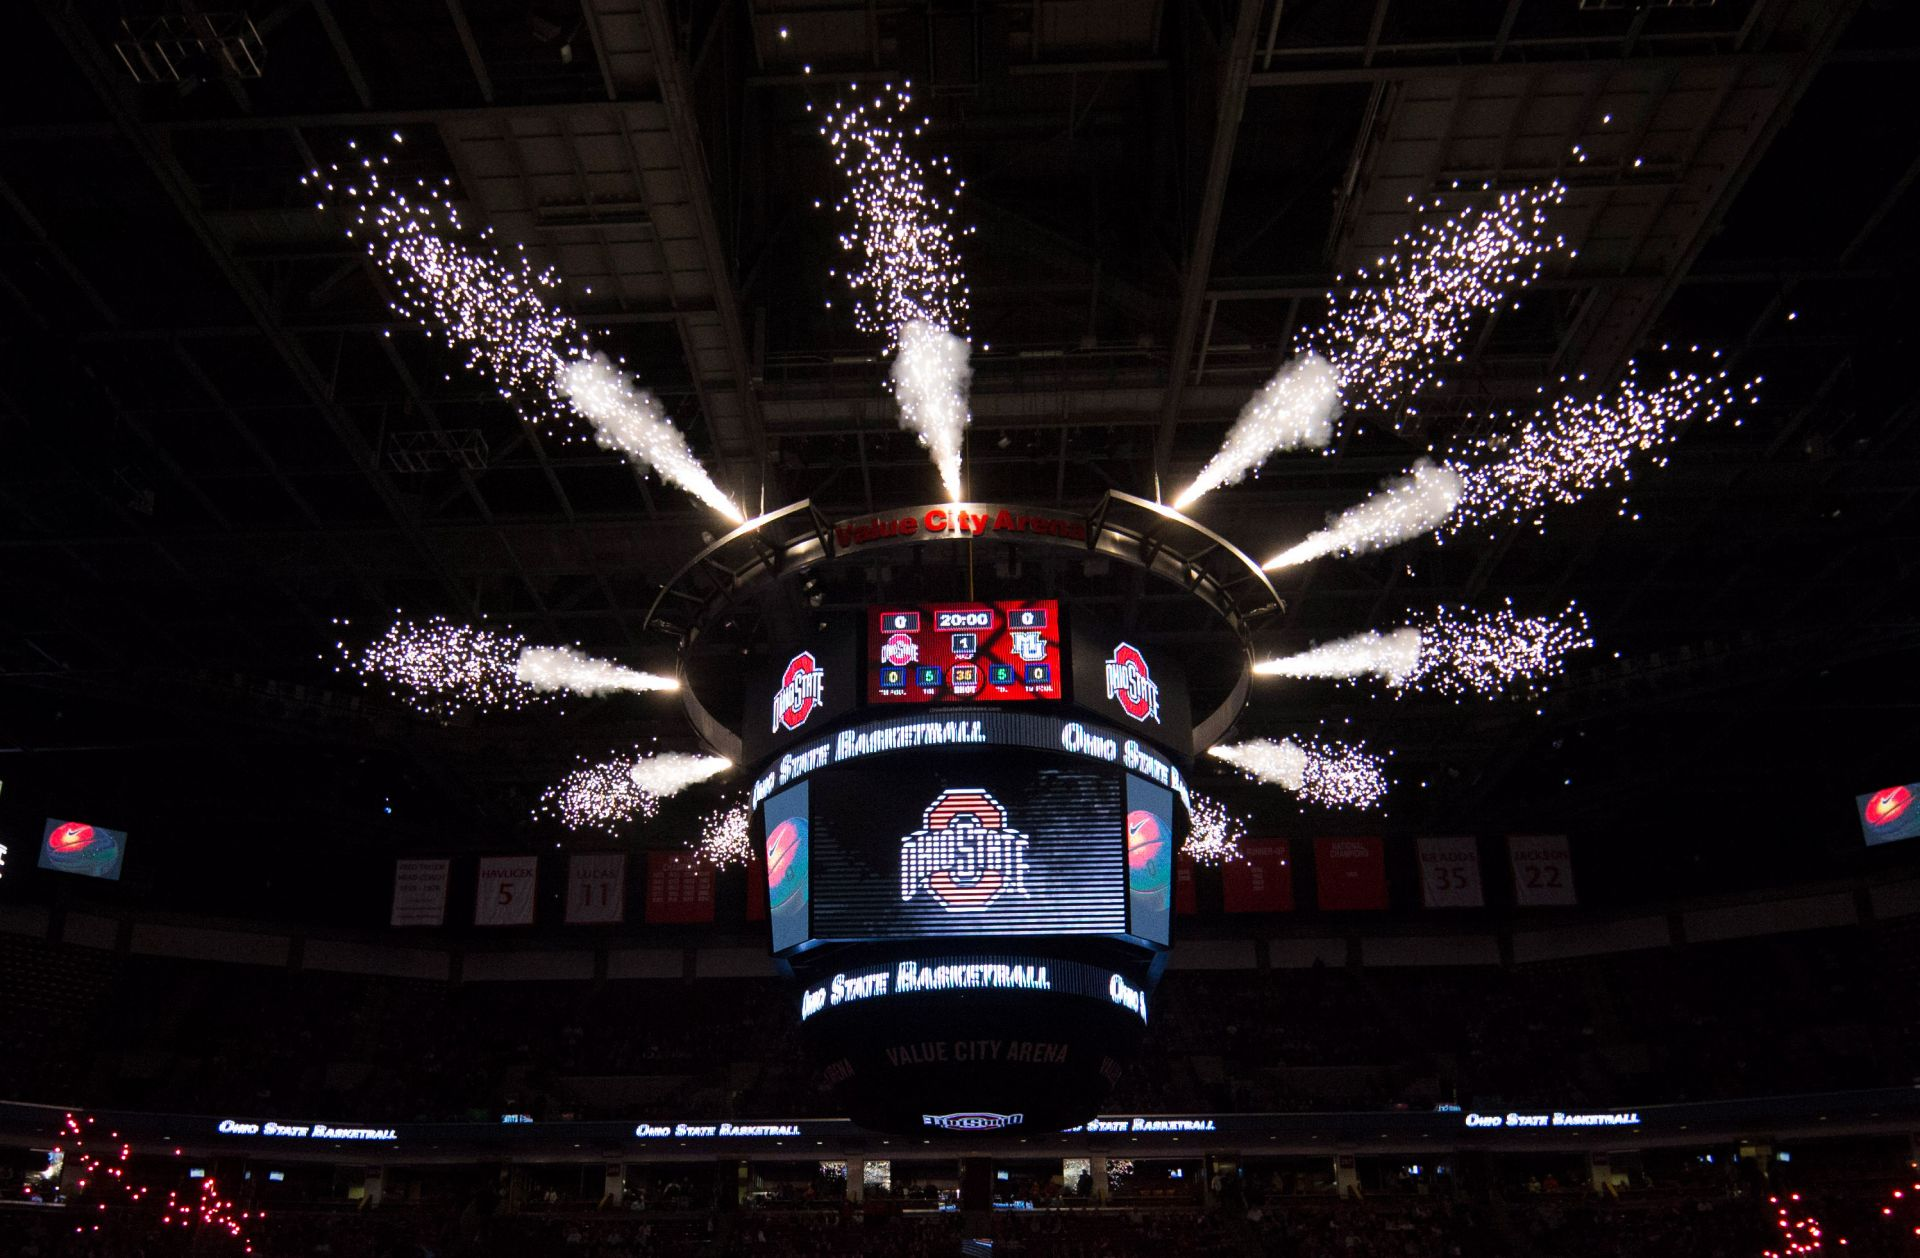 Nov 18, 2014; Columbus, OH, USA; A general view of fireworks being shot from the Ohio State Buckeyes scoreboard before the game against the Marquette Golden Eagles at Value City Arena. Ohio State won the game 74-63. Mandatory Credit: Greg Bartram-USA TODAY Sports